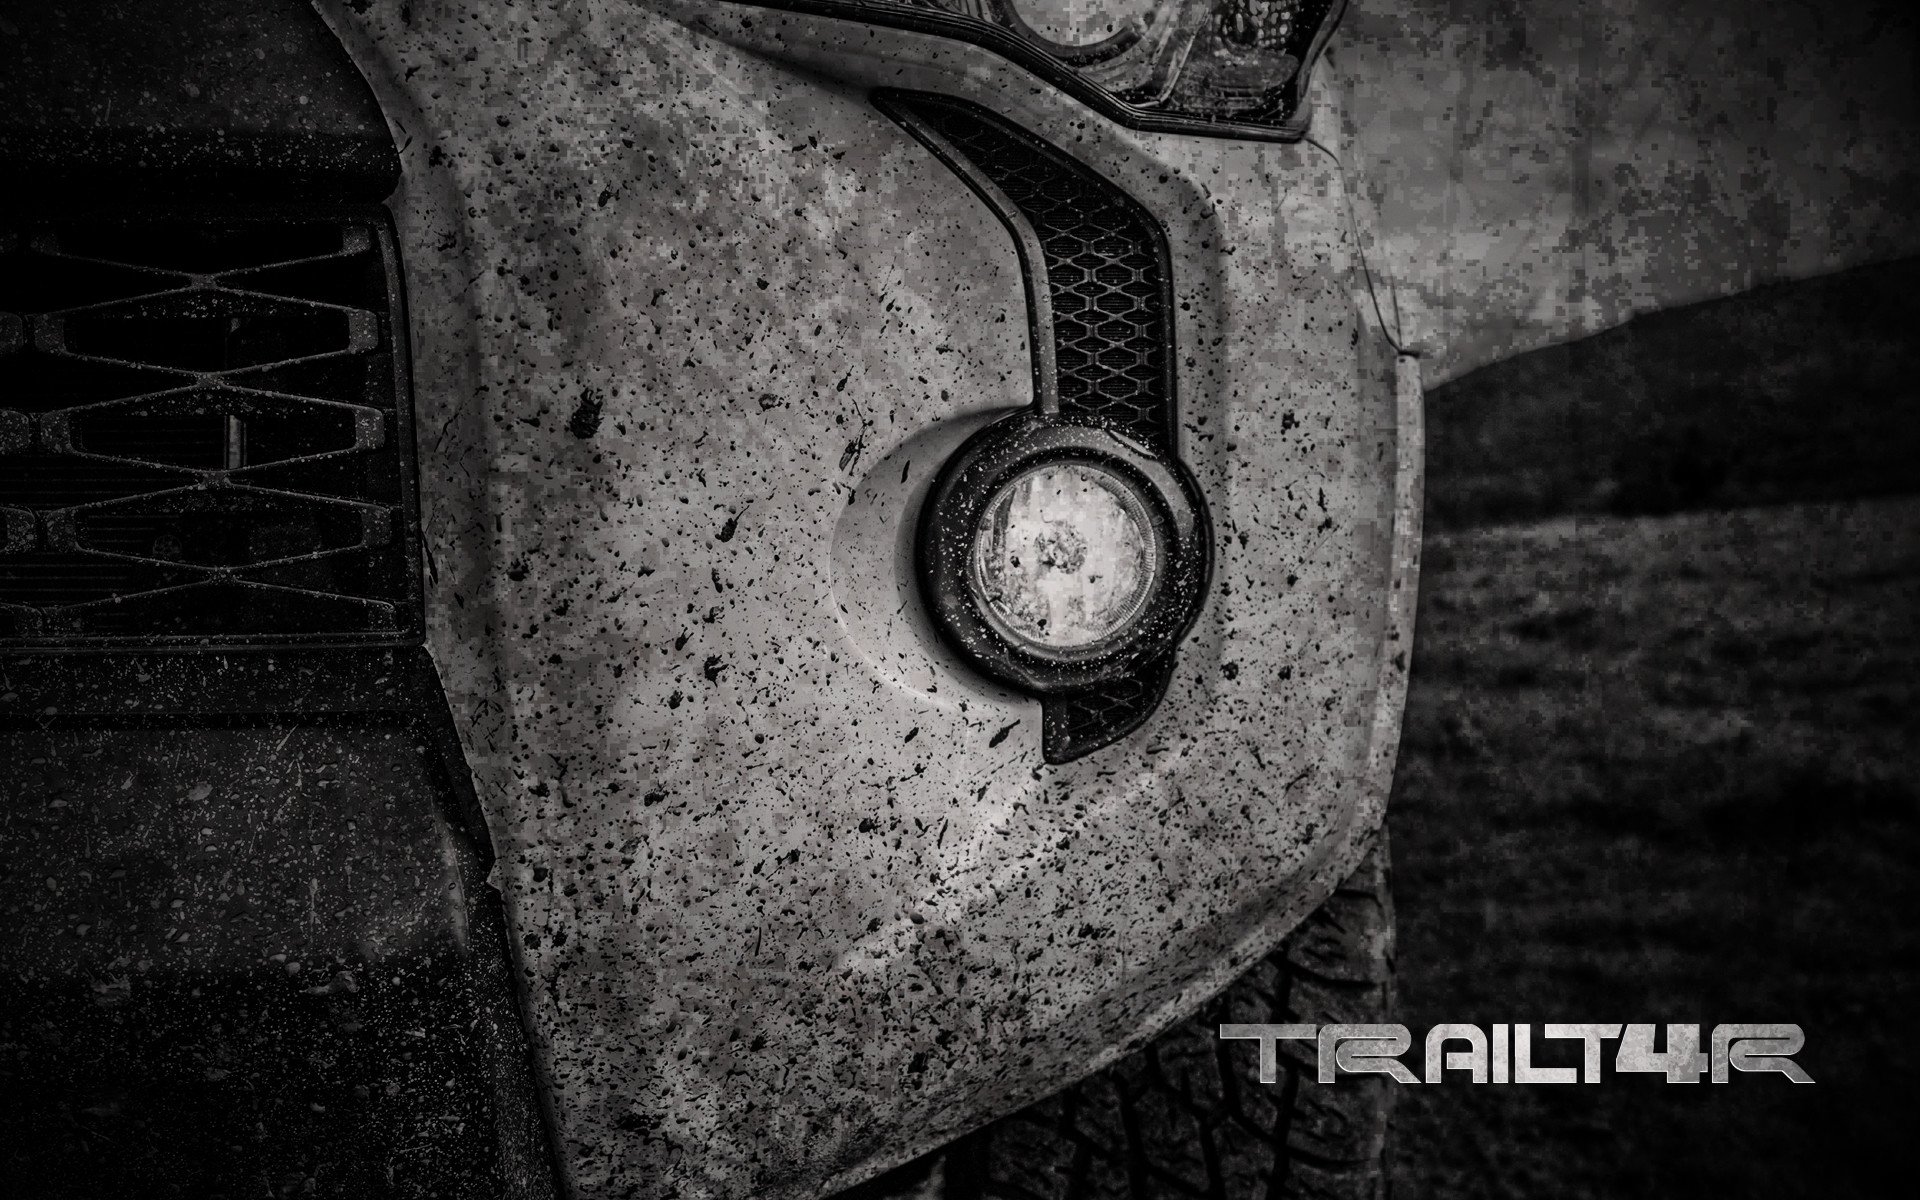 1920x1200 4Runner Grill Wallpaper Background - iPhone